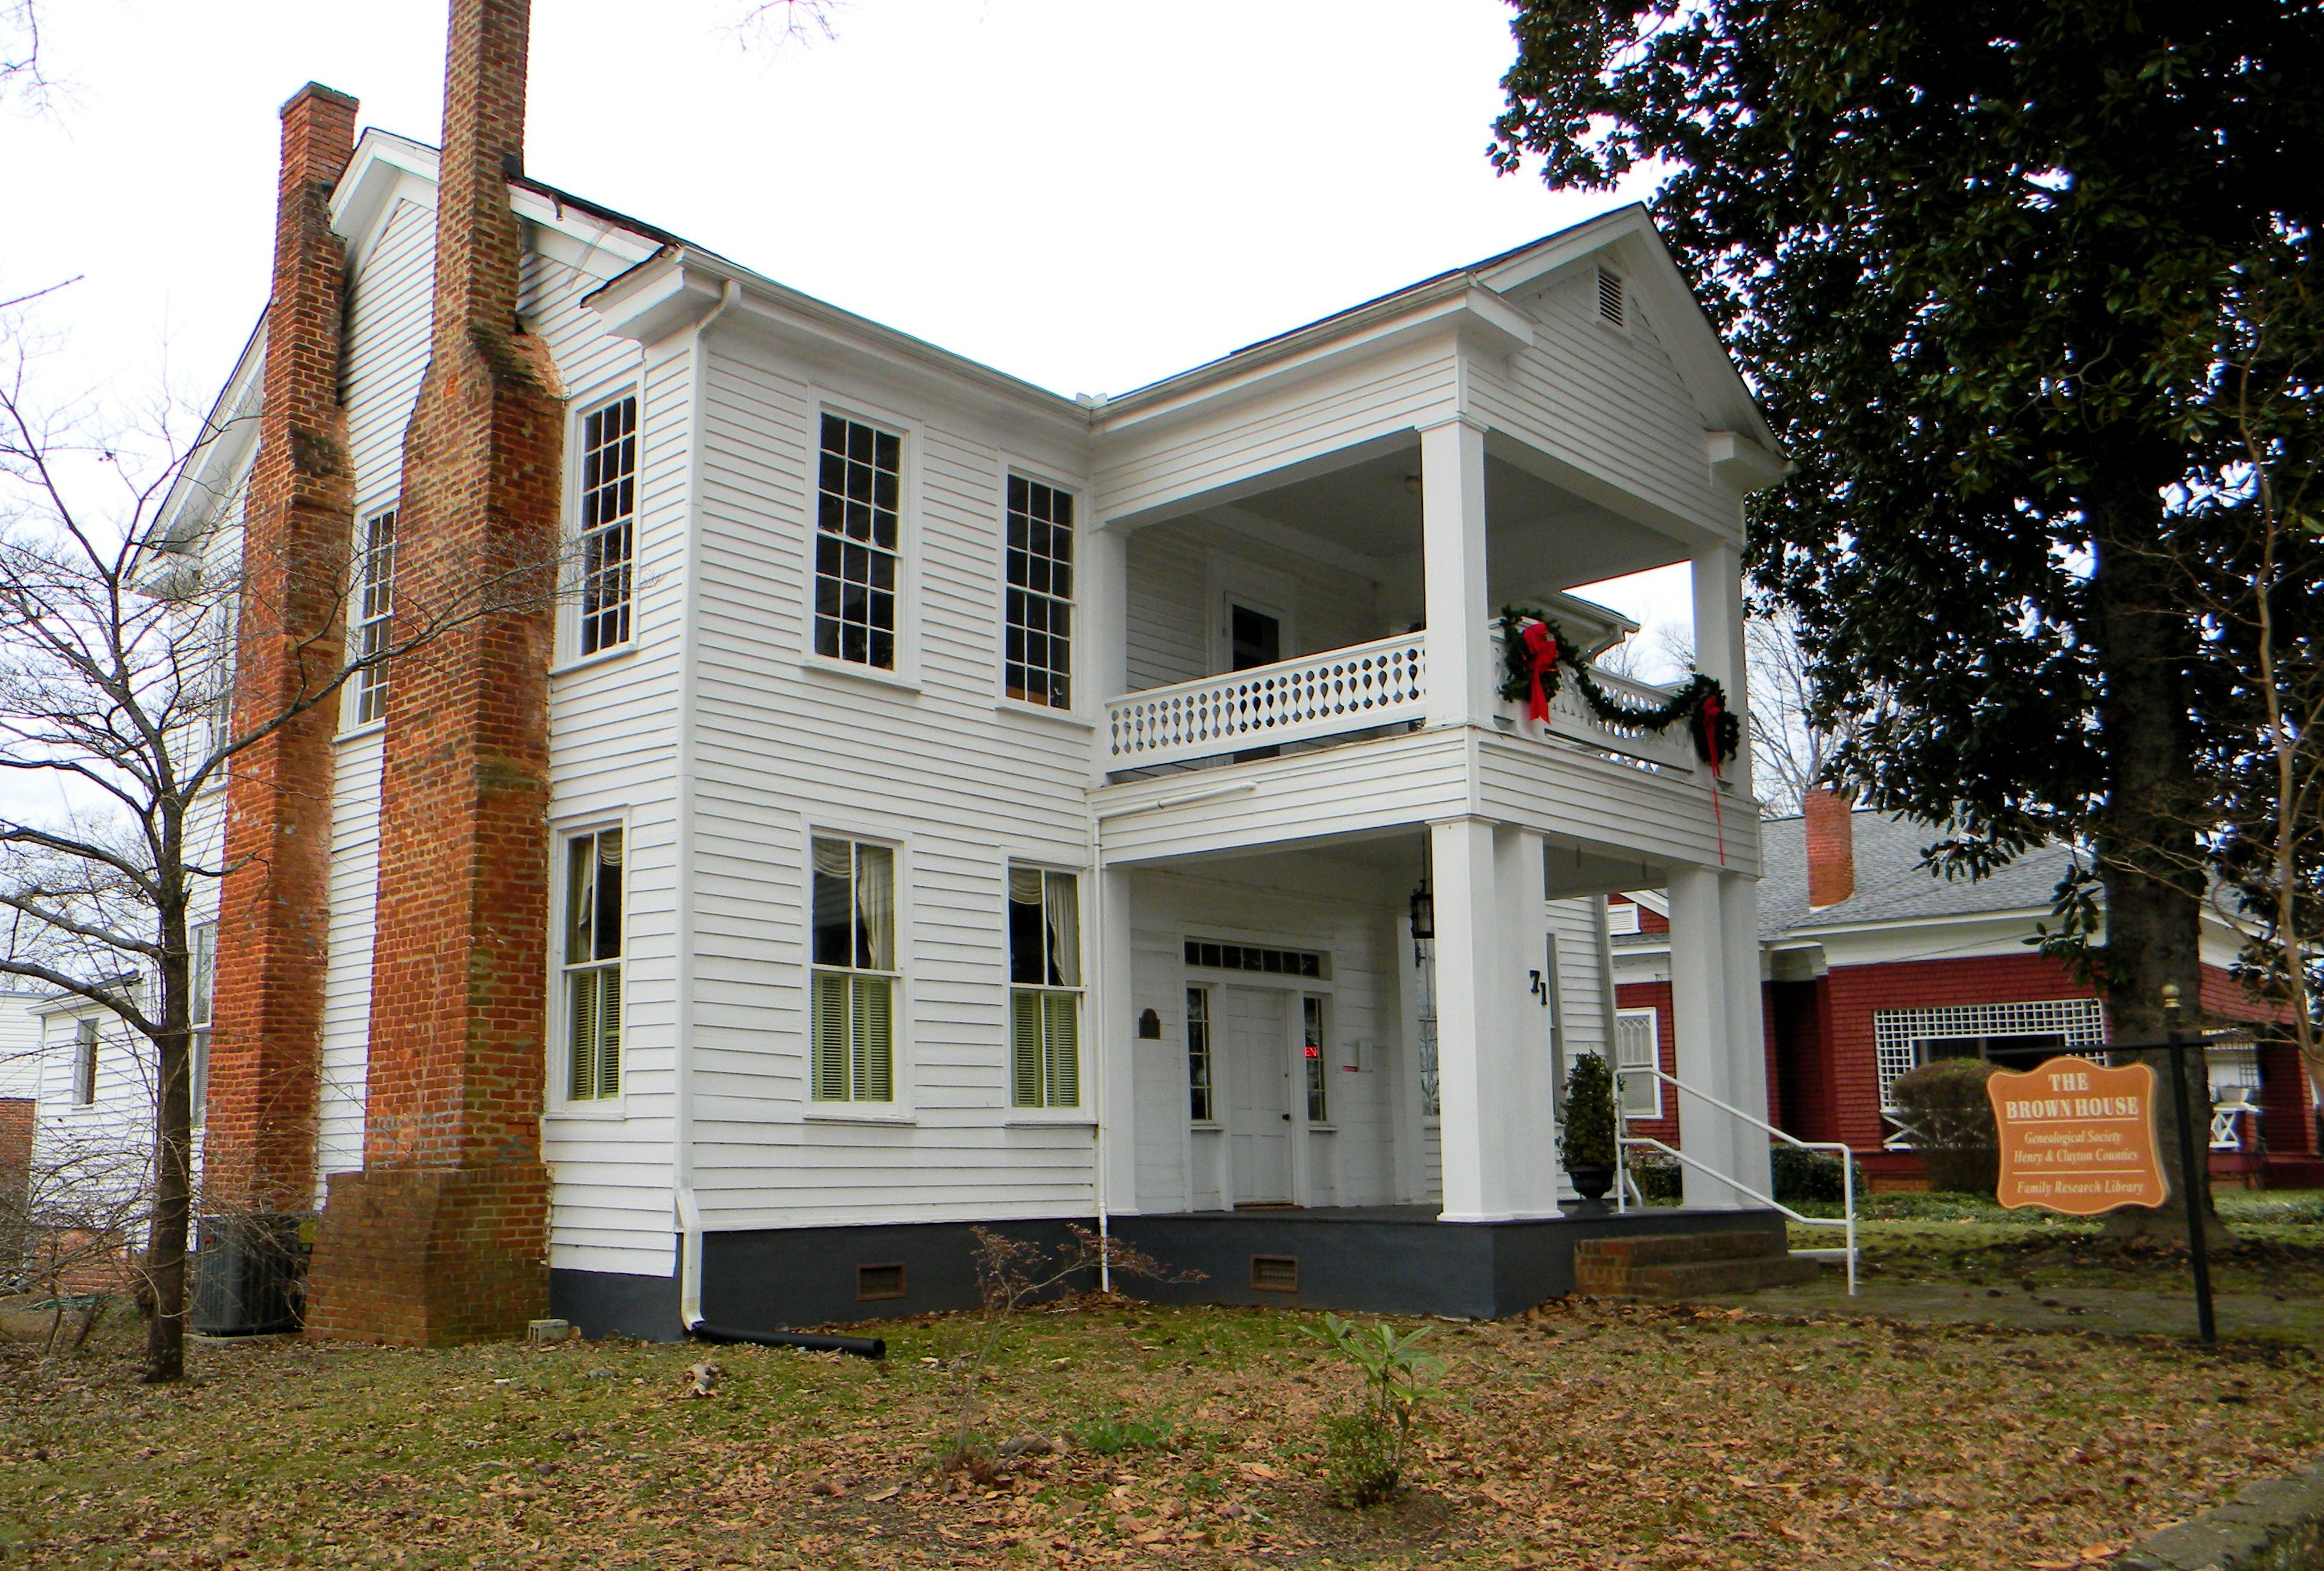 the brown house locate at 71 macon st., mcdonough ga. home of the